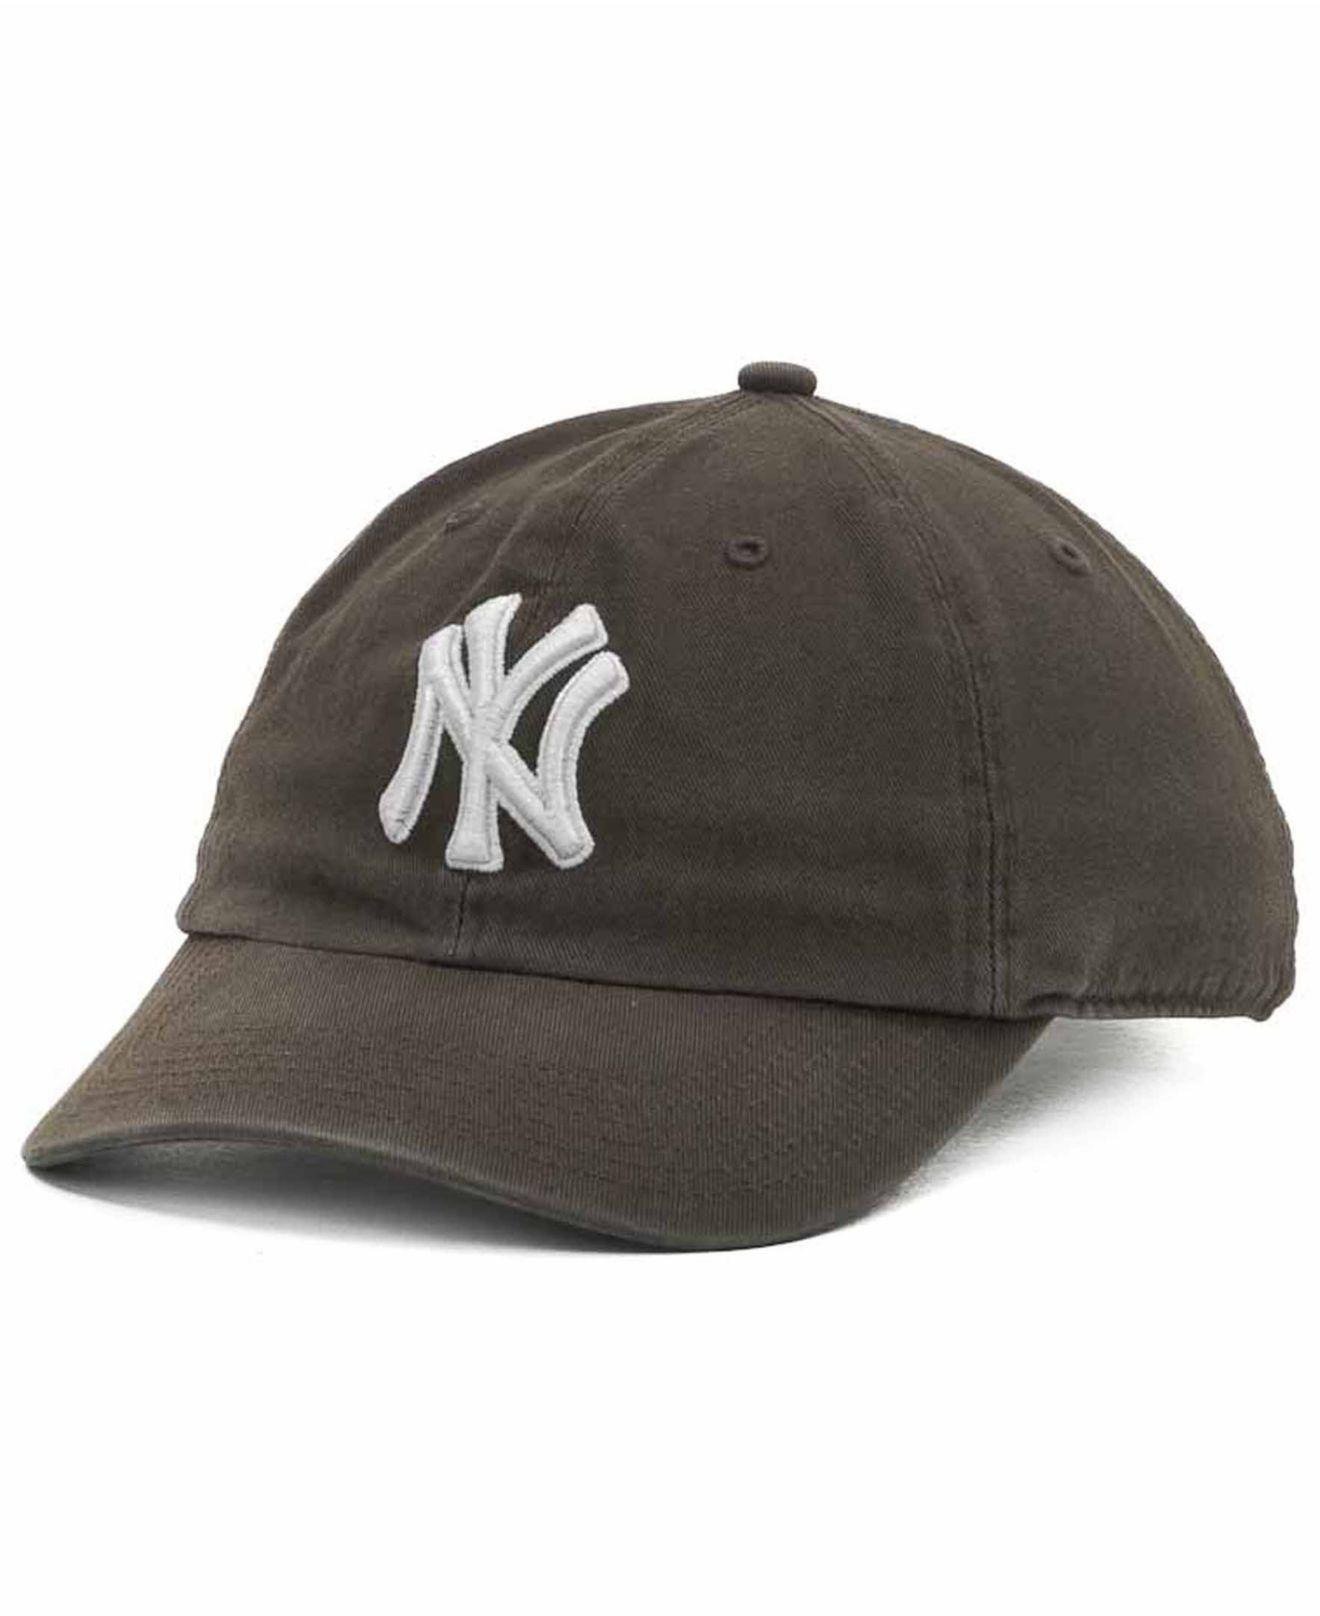 be5970e7f6f Lyst - 47 Brand New York Yankees Clean Up Hat in Brown for Men